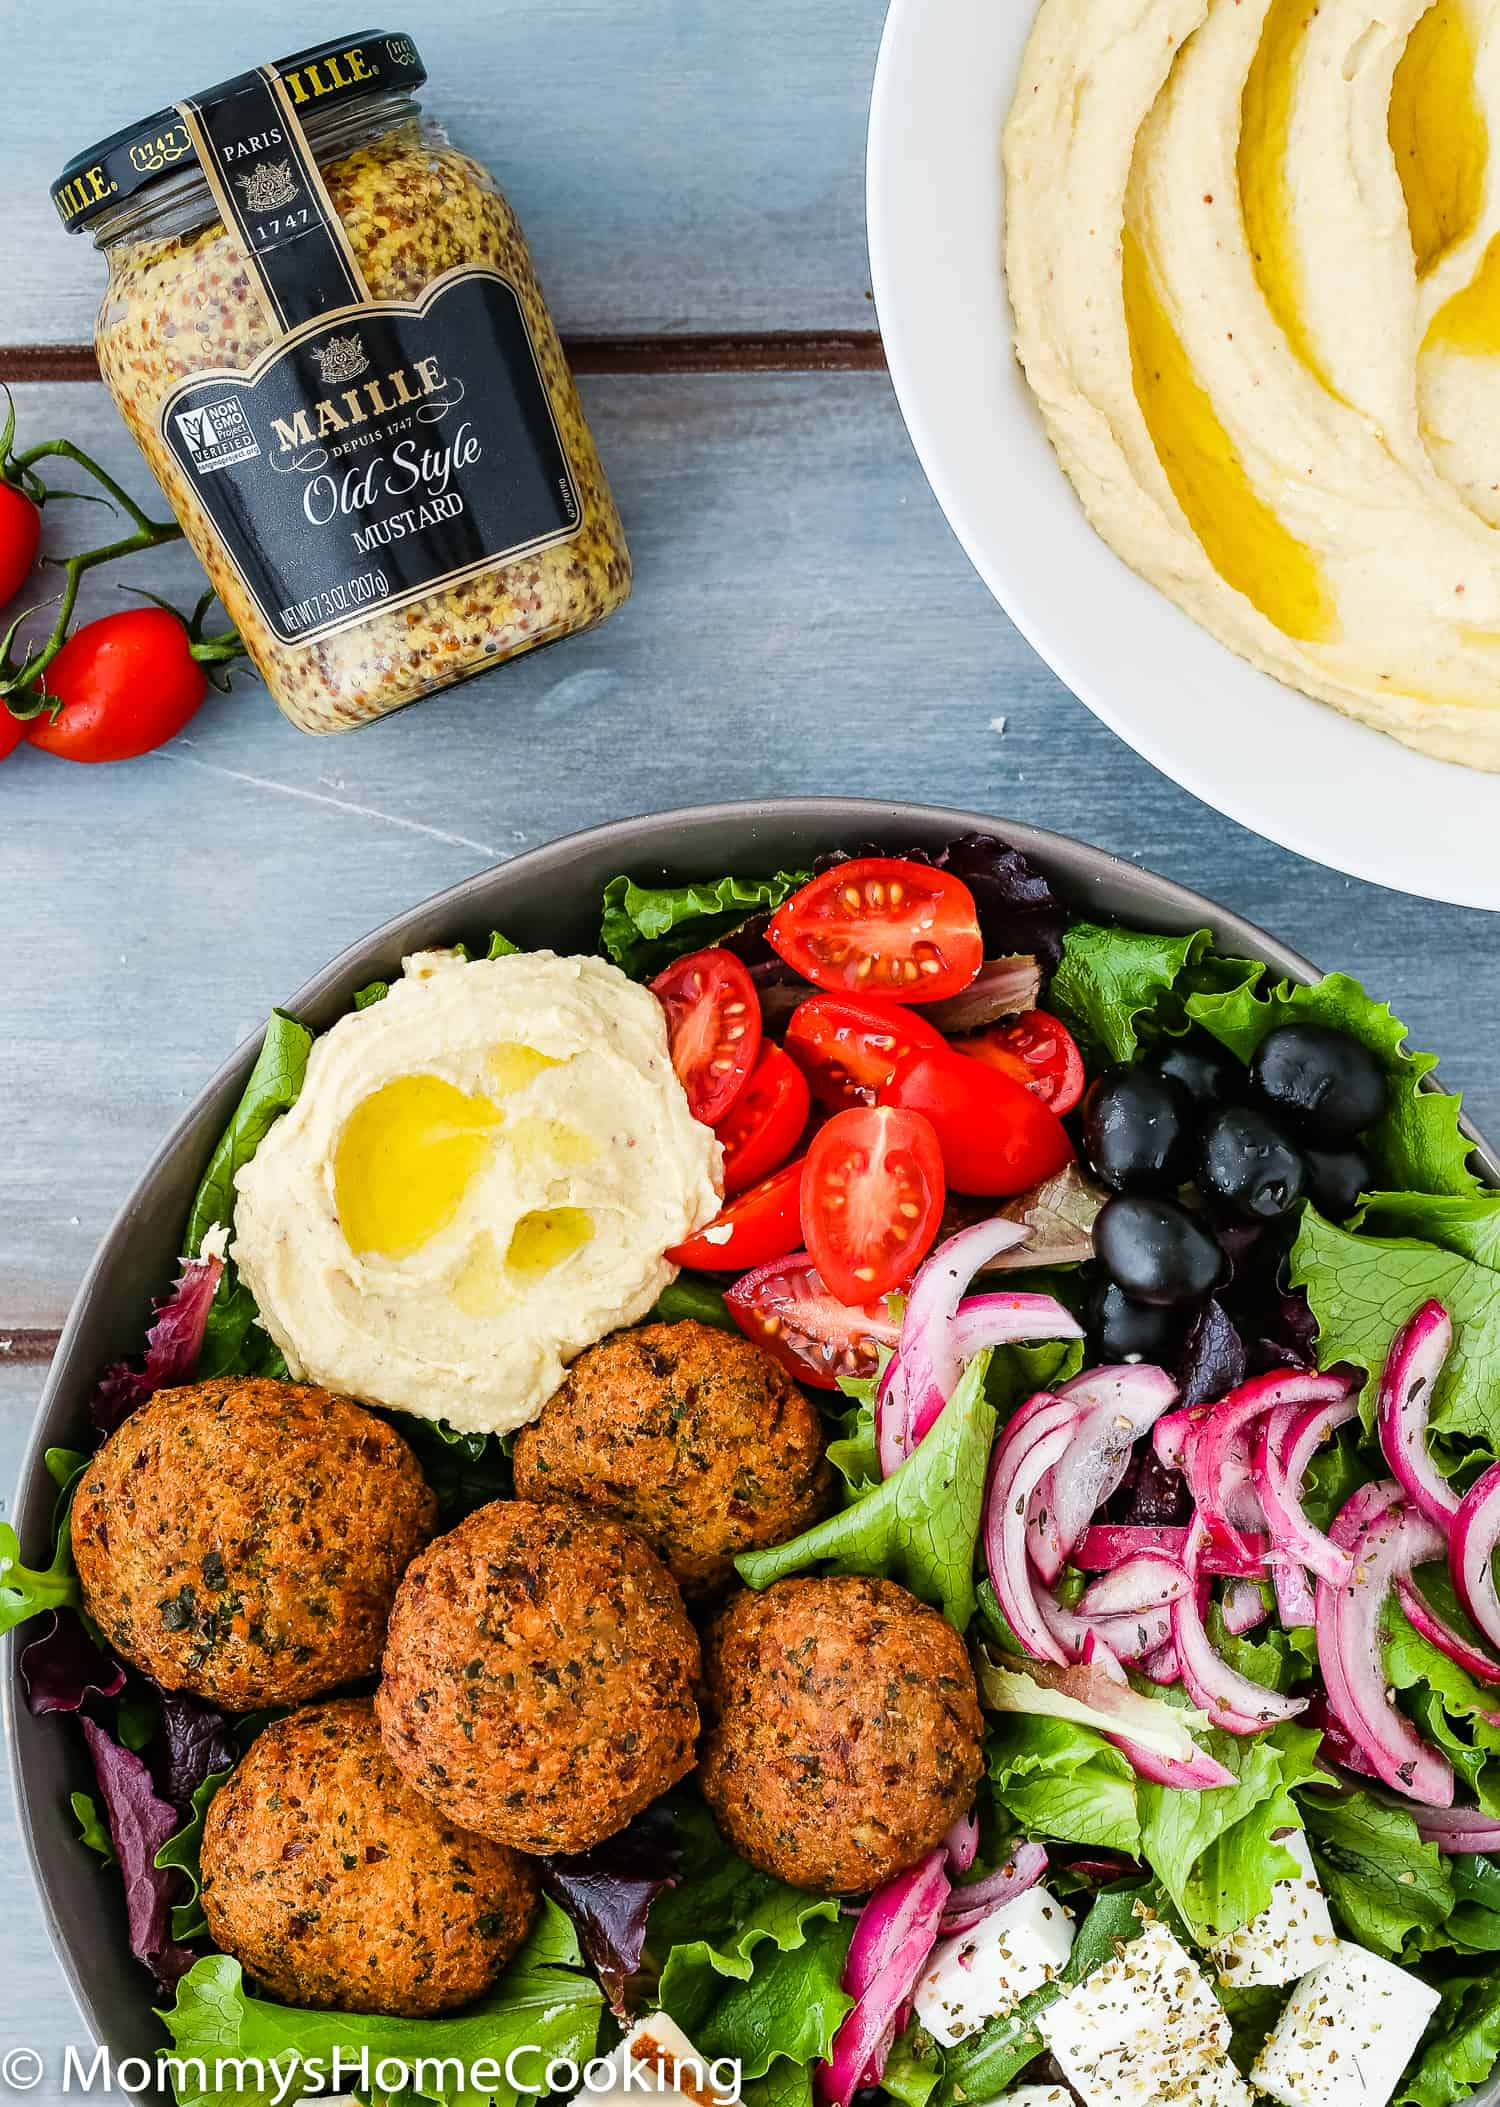 This Falafel Salad Bowls with Mustard Hummus is a burst of Mediterranean flavors in every bite! It's not only easy to make, but delicious and satisfying too. A perfect meatless meal to share with family and friends during lent time! https://mommyshomecooking.com